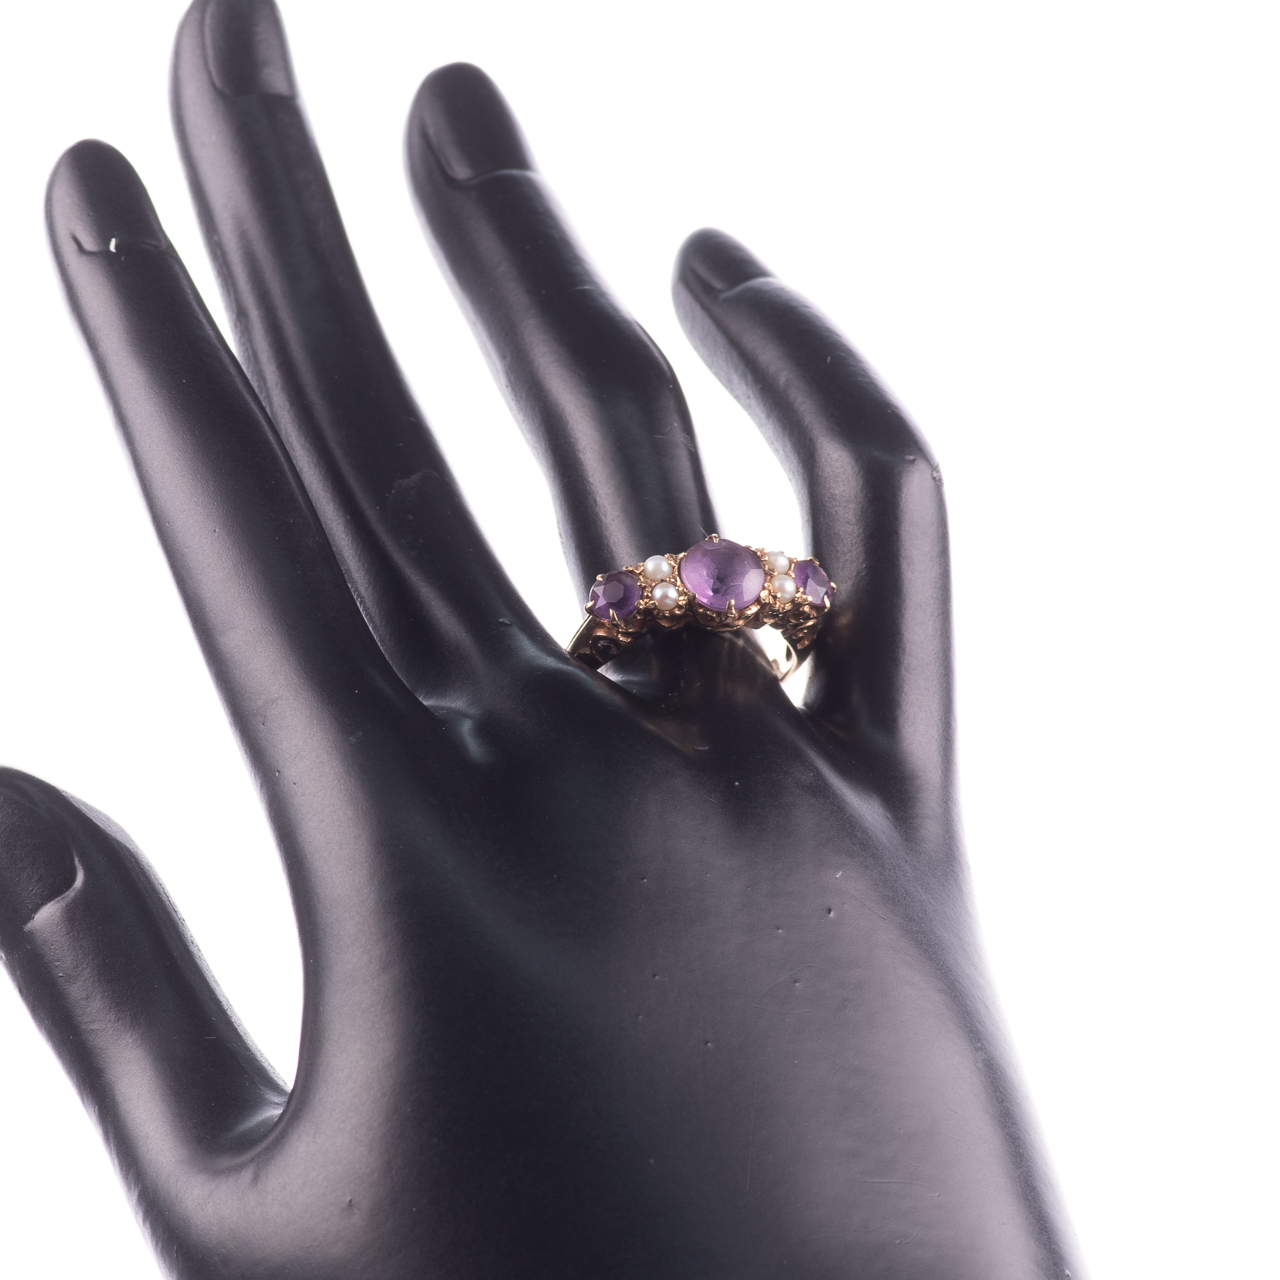 9ct Gold 2.10ct Amethyst & Pearl Ring - Image 2 of 7